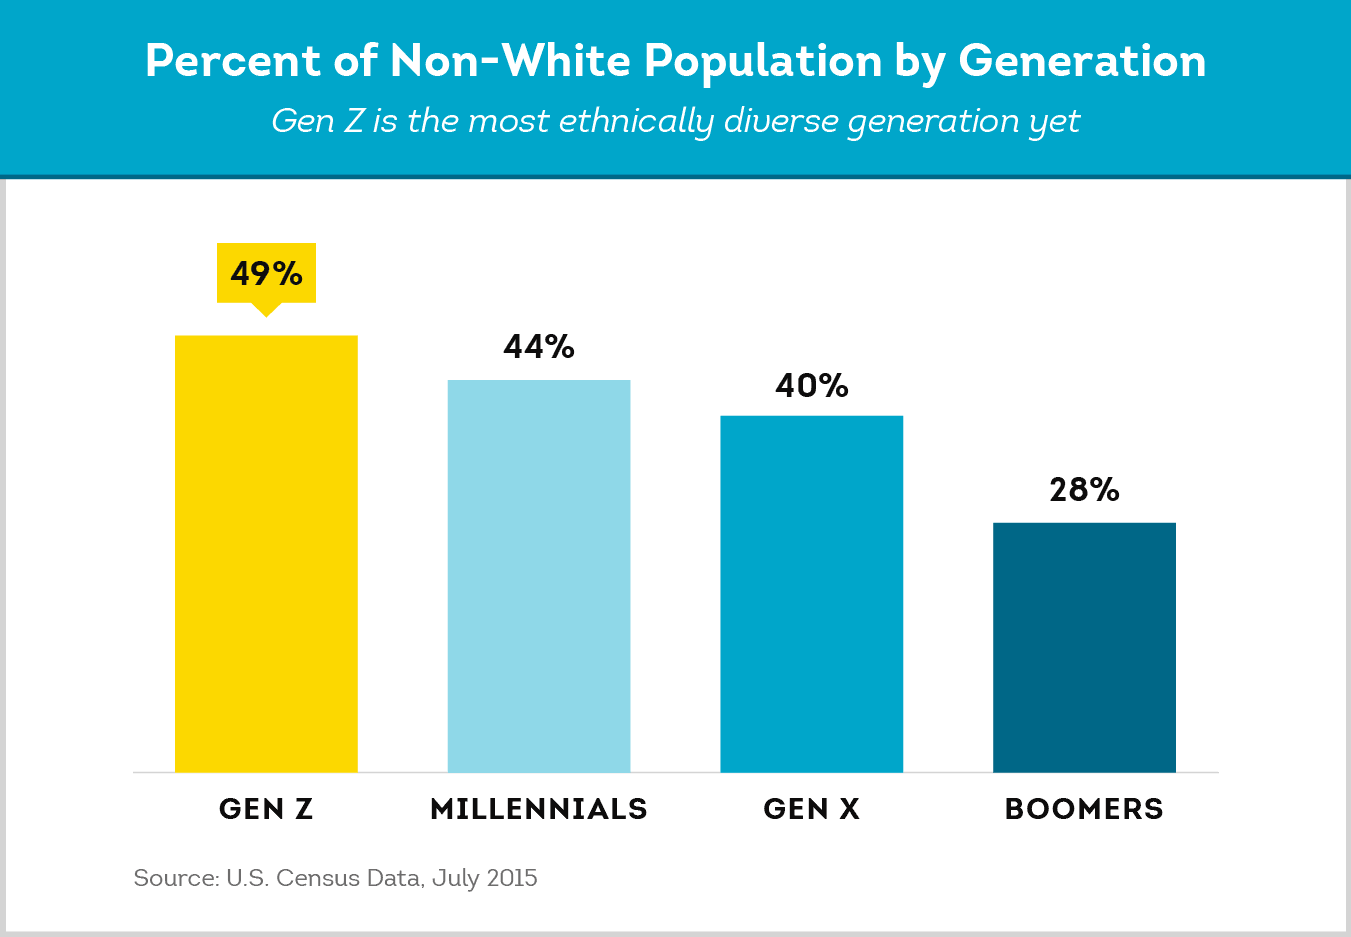 gen z population is ethnically diverse compared to previous generations